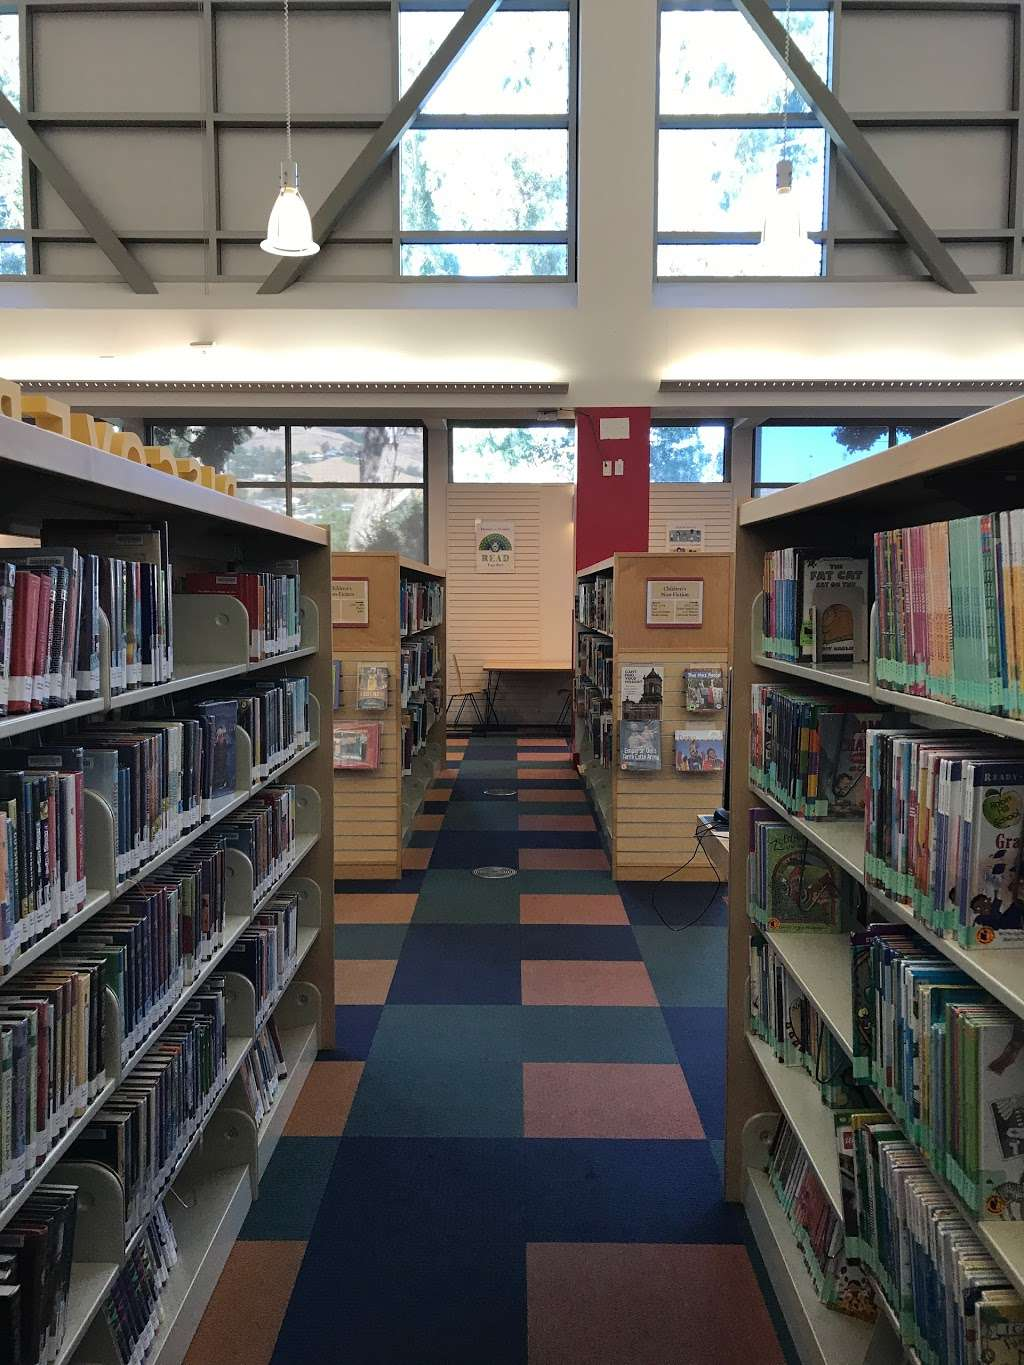 Berryessa Branch Library - library  | Photo 7 of 10 | Address: 3355 Noble Ave, San Jose, CA 95132, USA | Phone: (408) 808-3050